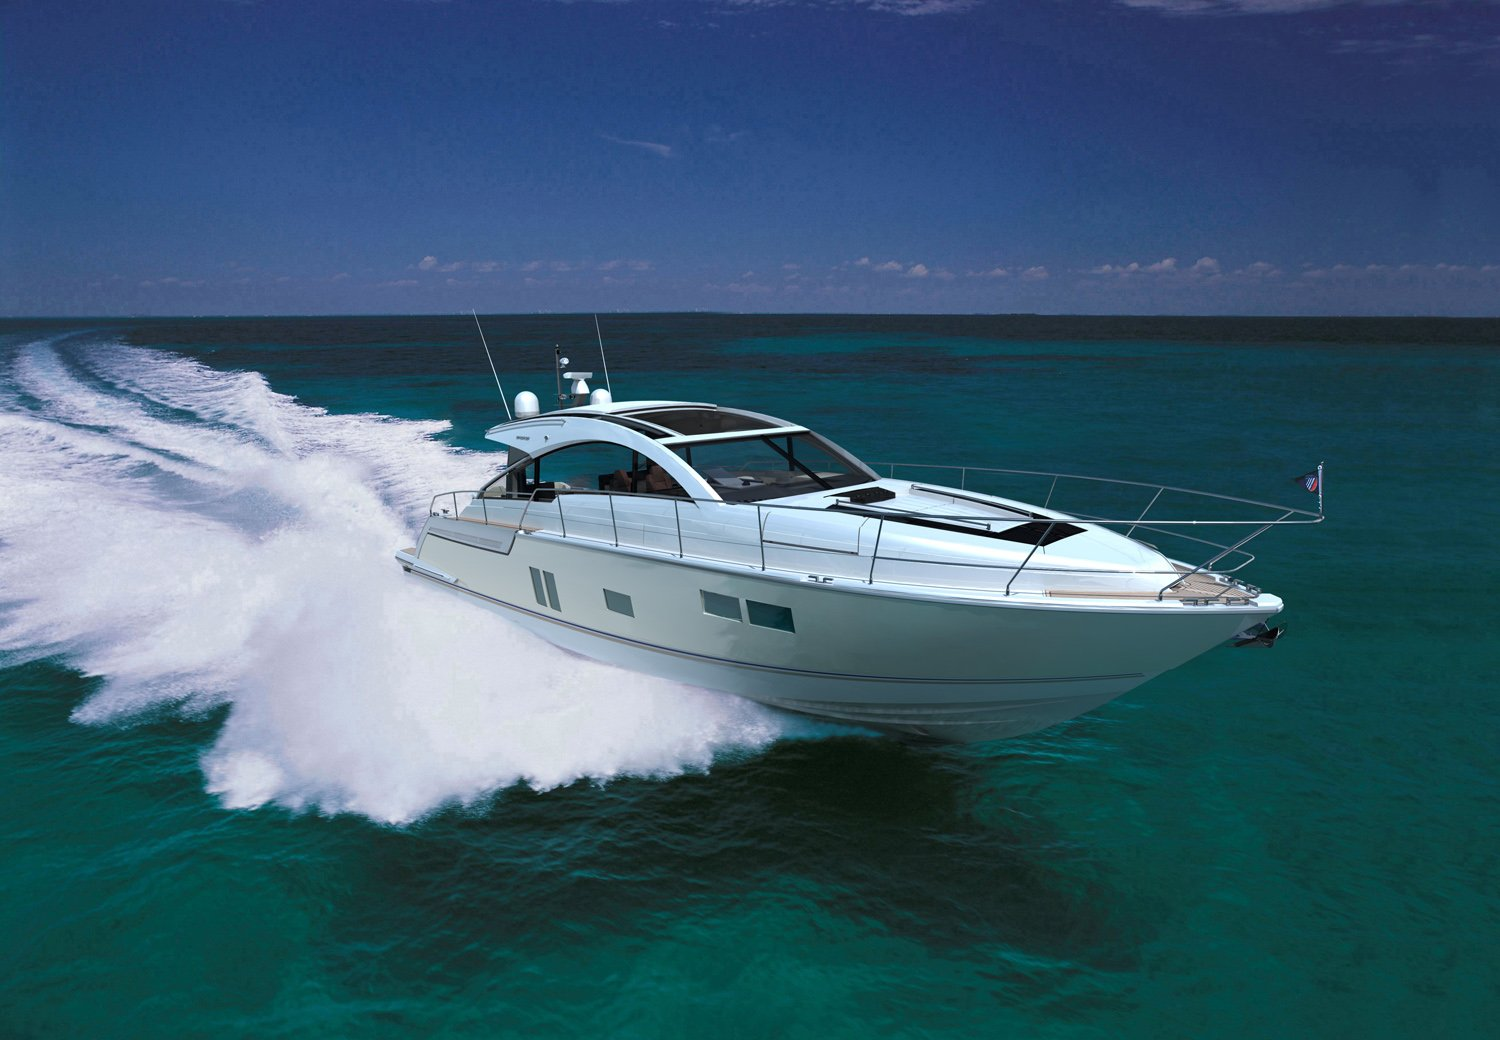 Fairline Targa 58 Gran Turismo continues on 1st boat show tour ...